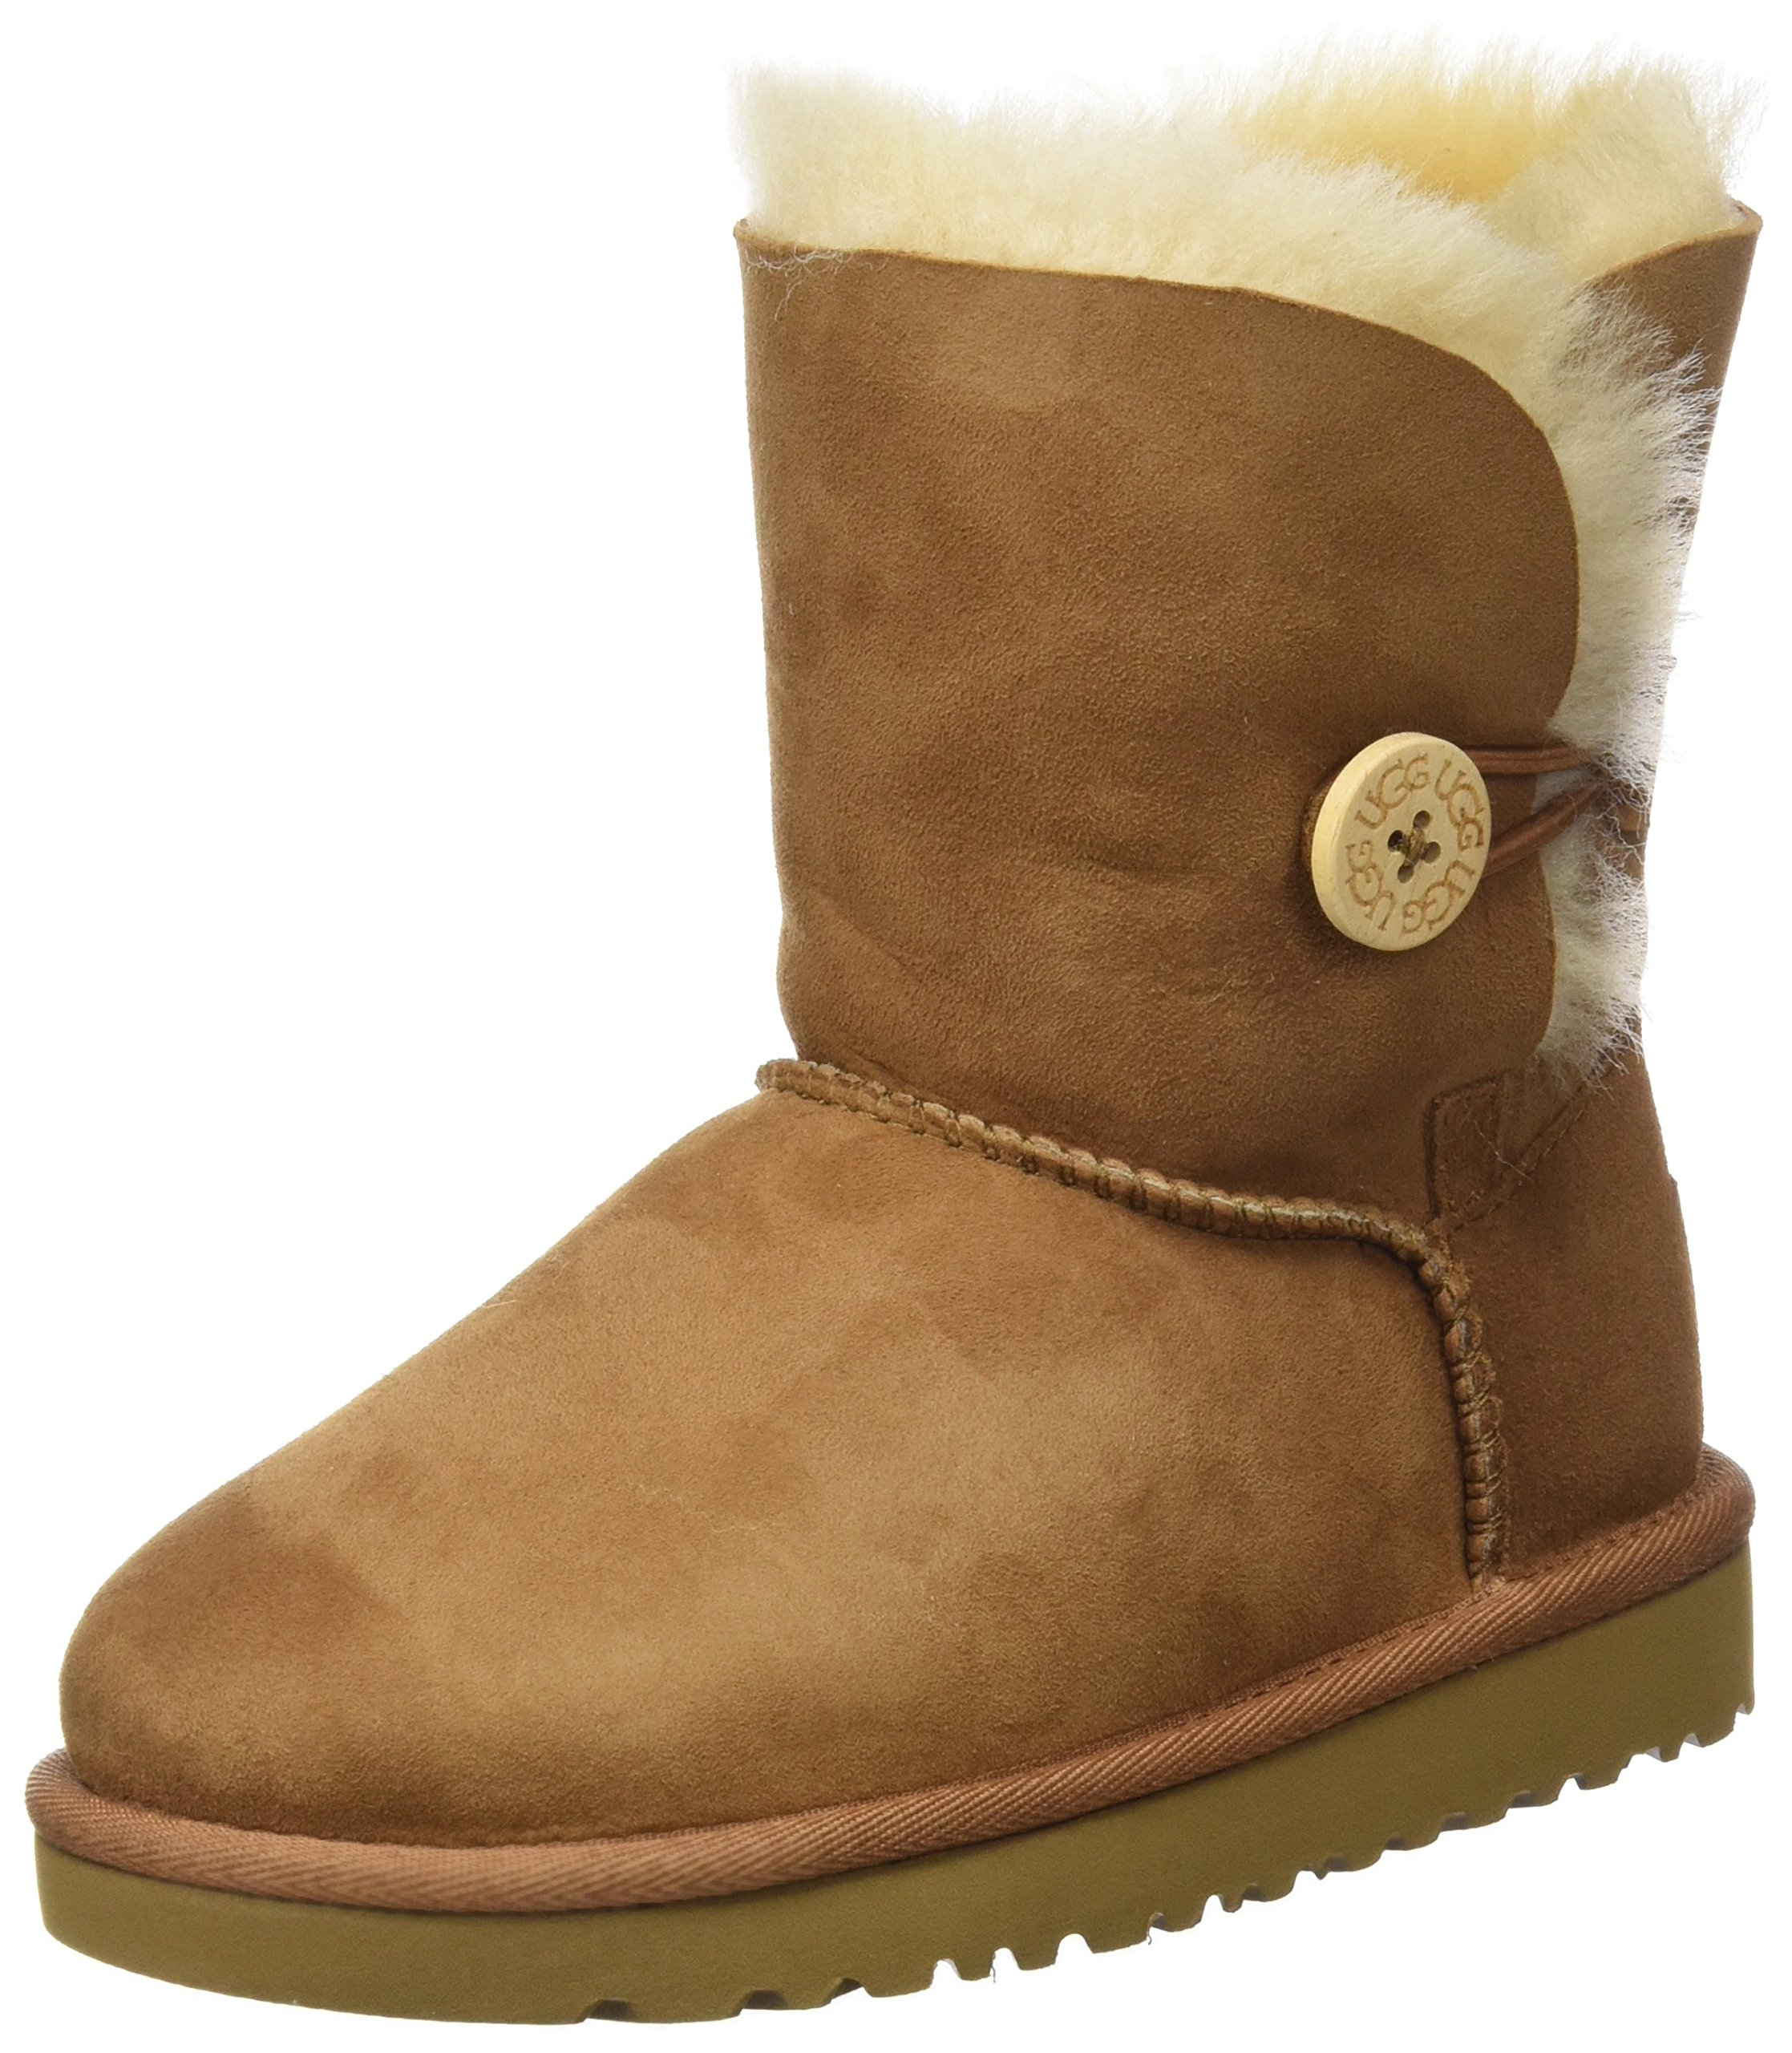 UGG Girl's Bailey Button Boot, Chestnut, 13 Little Kid M